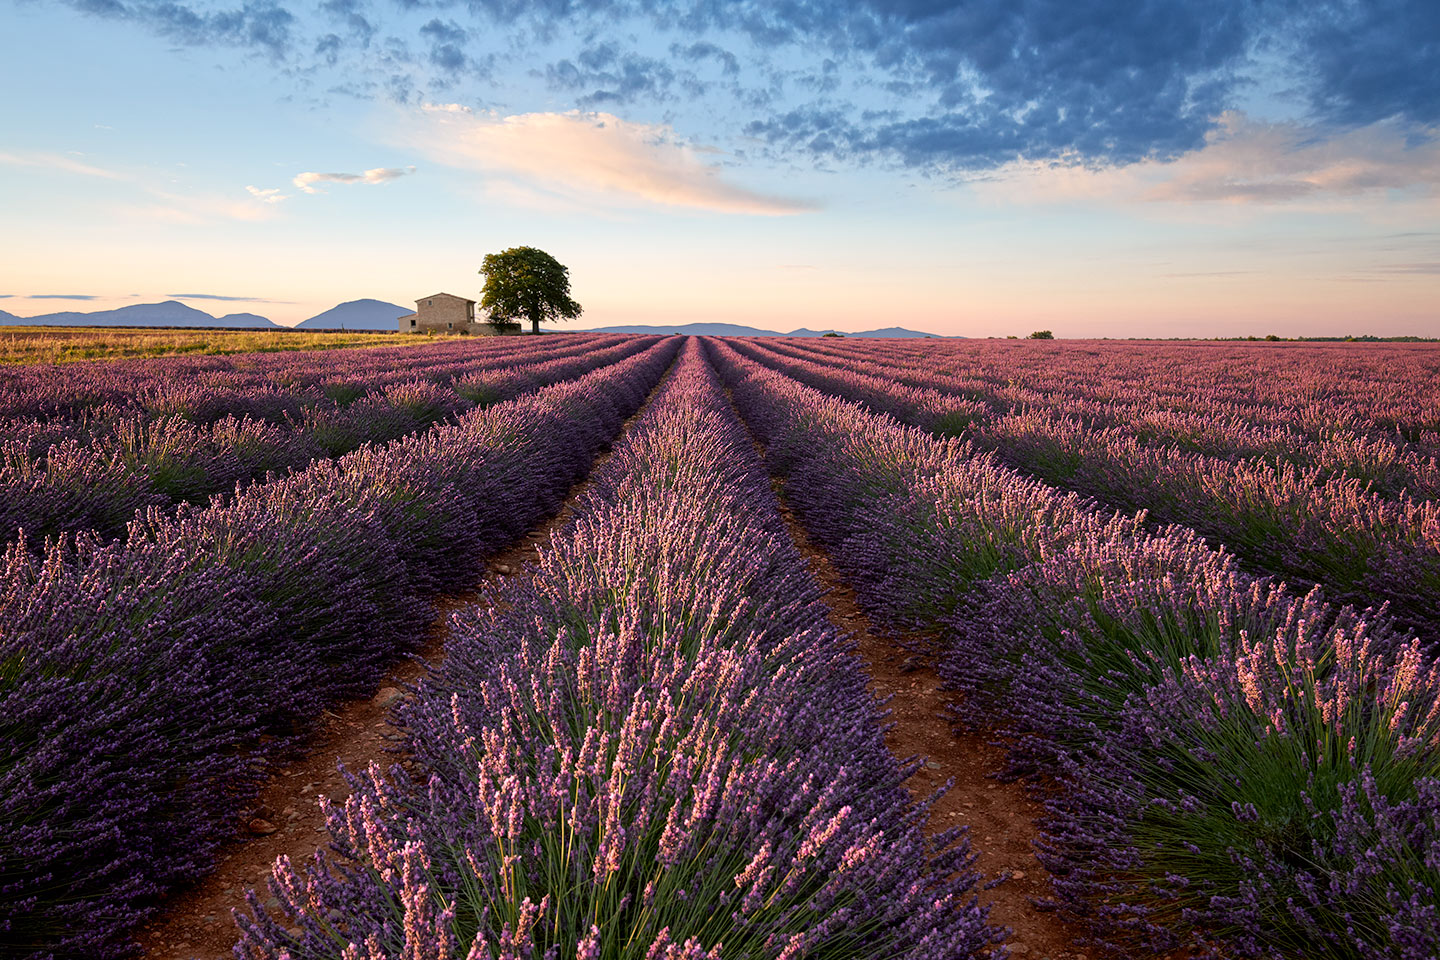 Valensole, France - July 2014 - Fujifilm X-T1